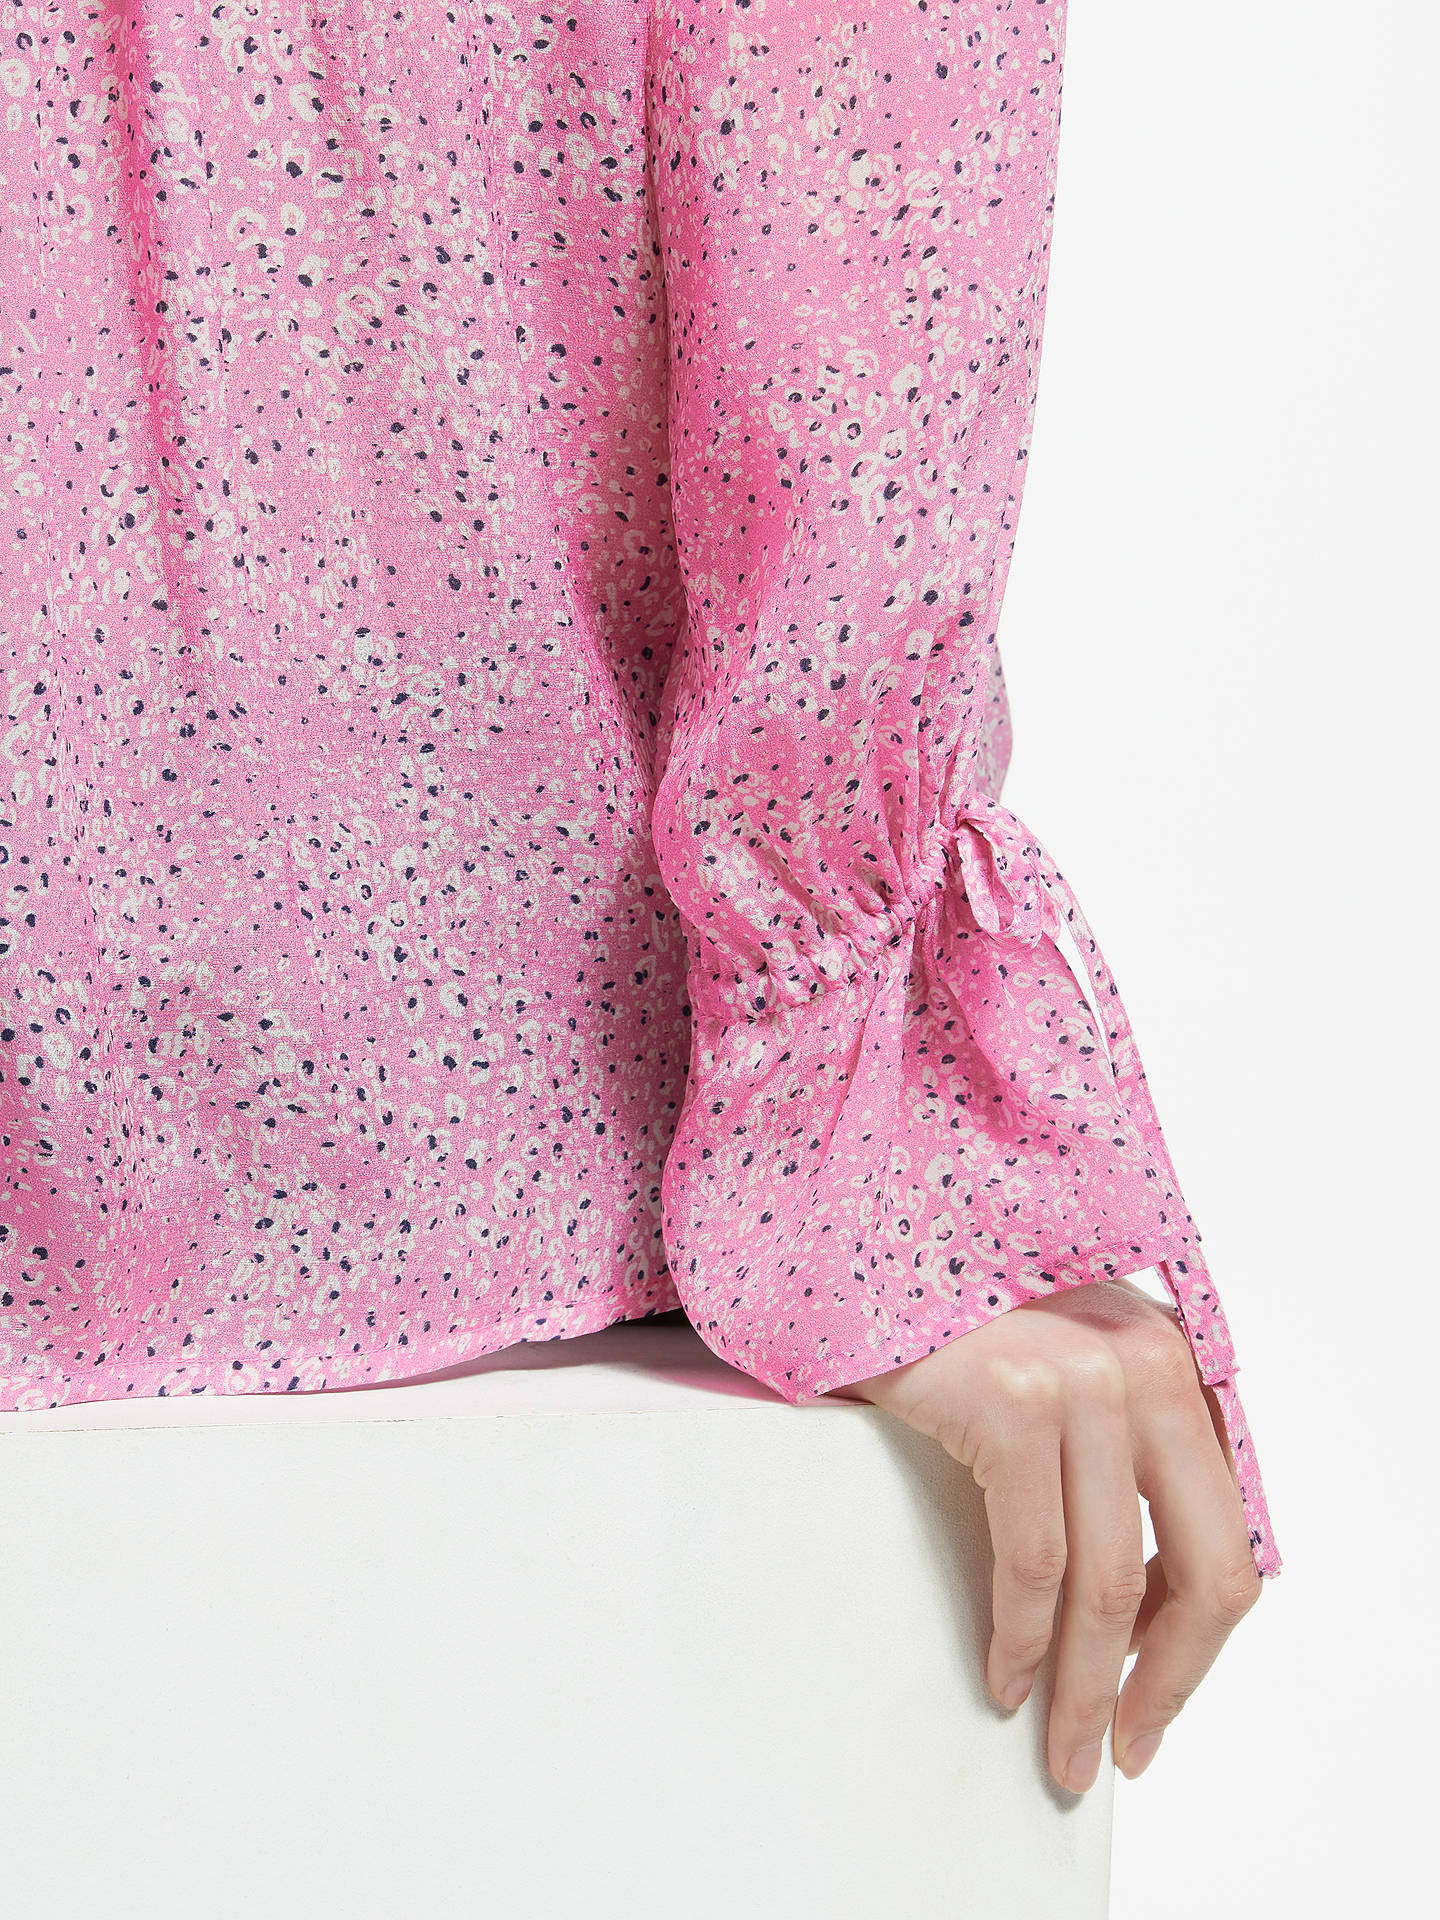 BuyPyrus Anais Tiny Animal Print Blouse, Pink, XS Online at johnlewis.com